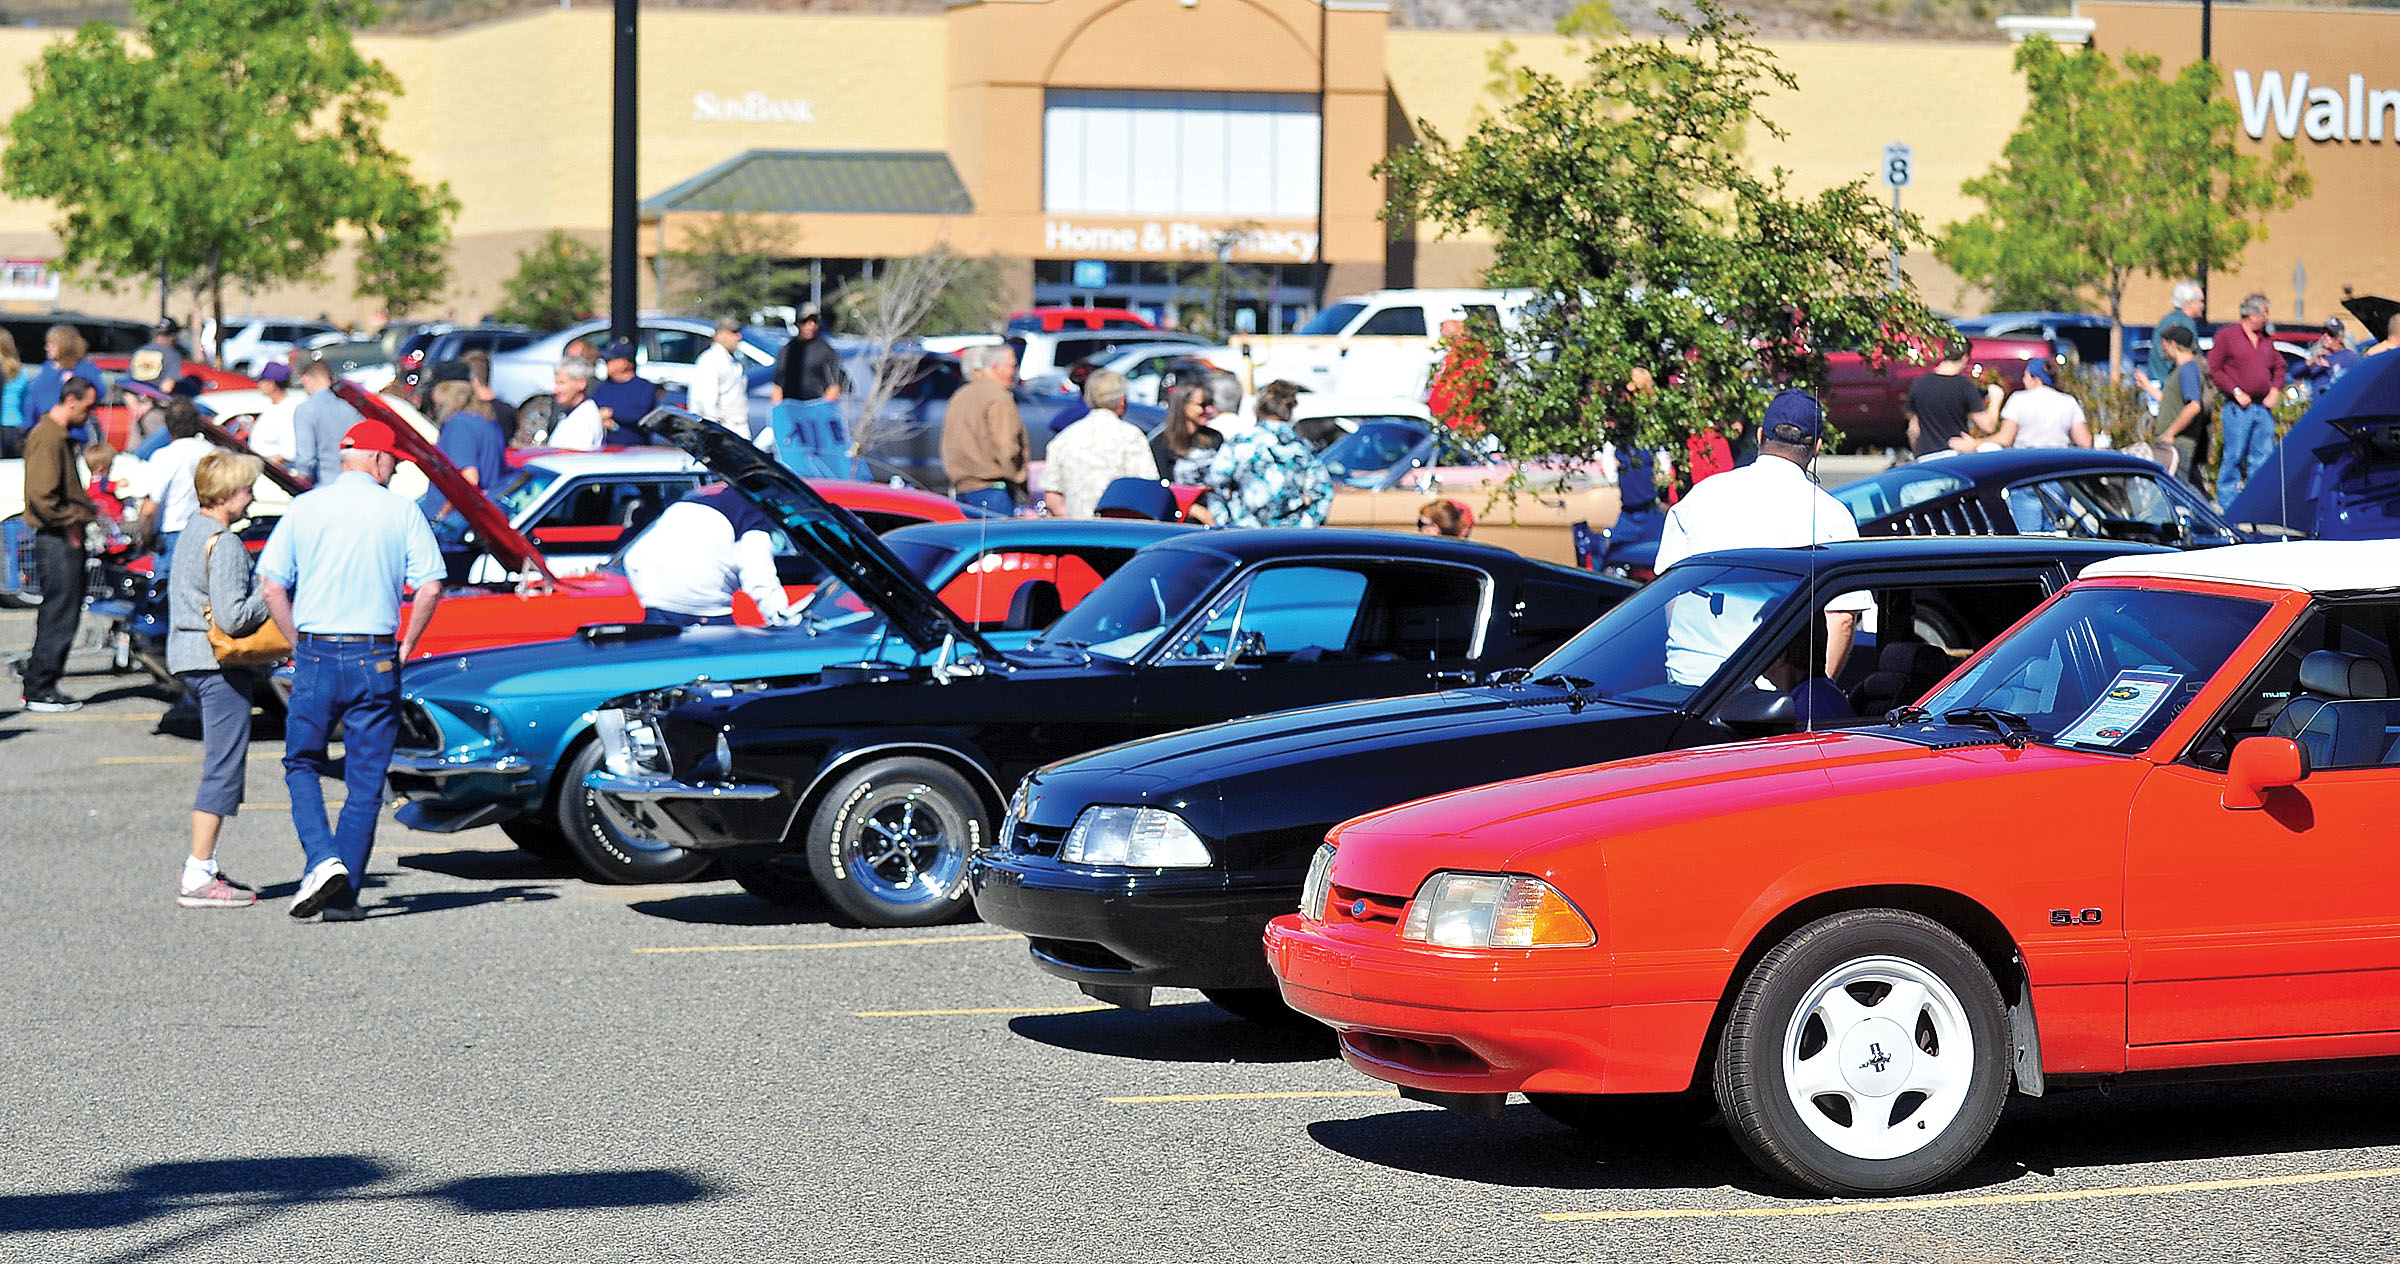 Mustangs Of All Ages And Conditions The Daily Courier Prescott AZ - Mustang car shows